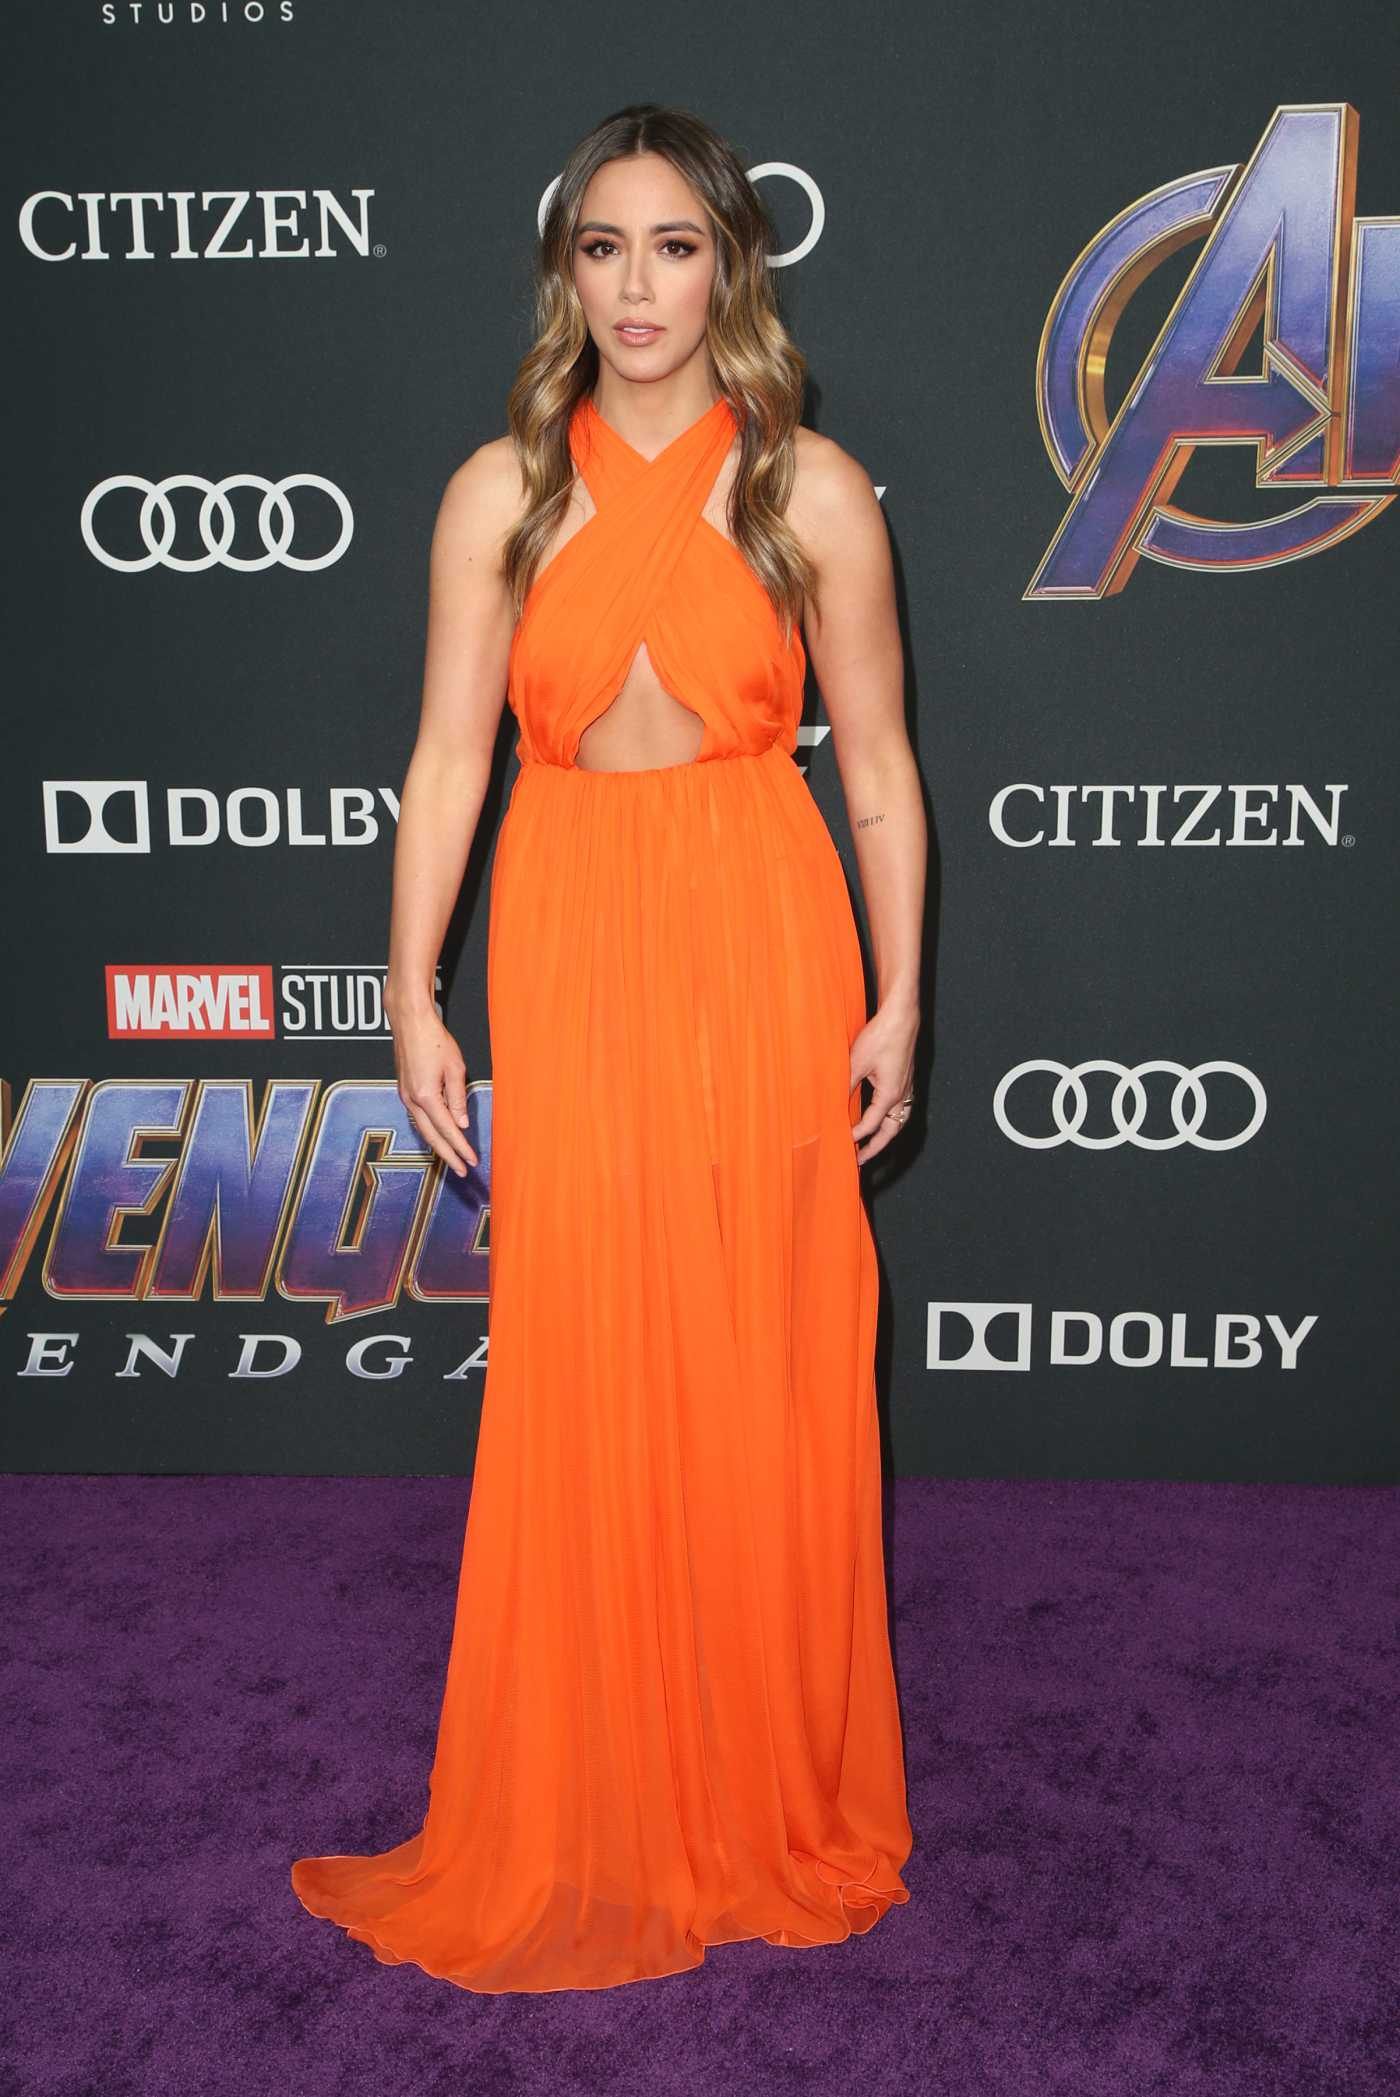 Chloe Bennet Attends Avengers: Endgame Premiere in Los Angeles 04/22/2019